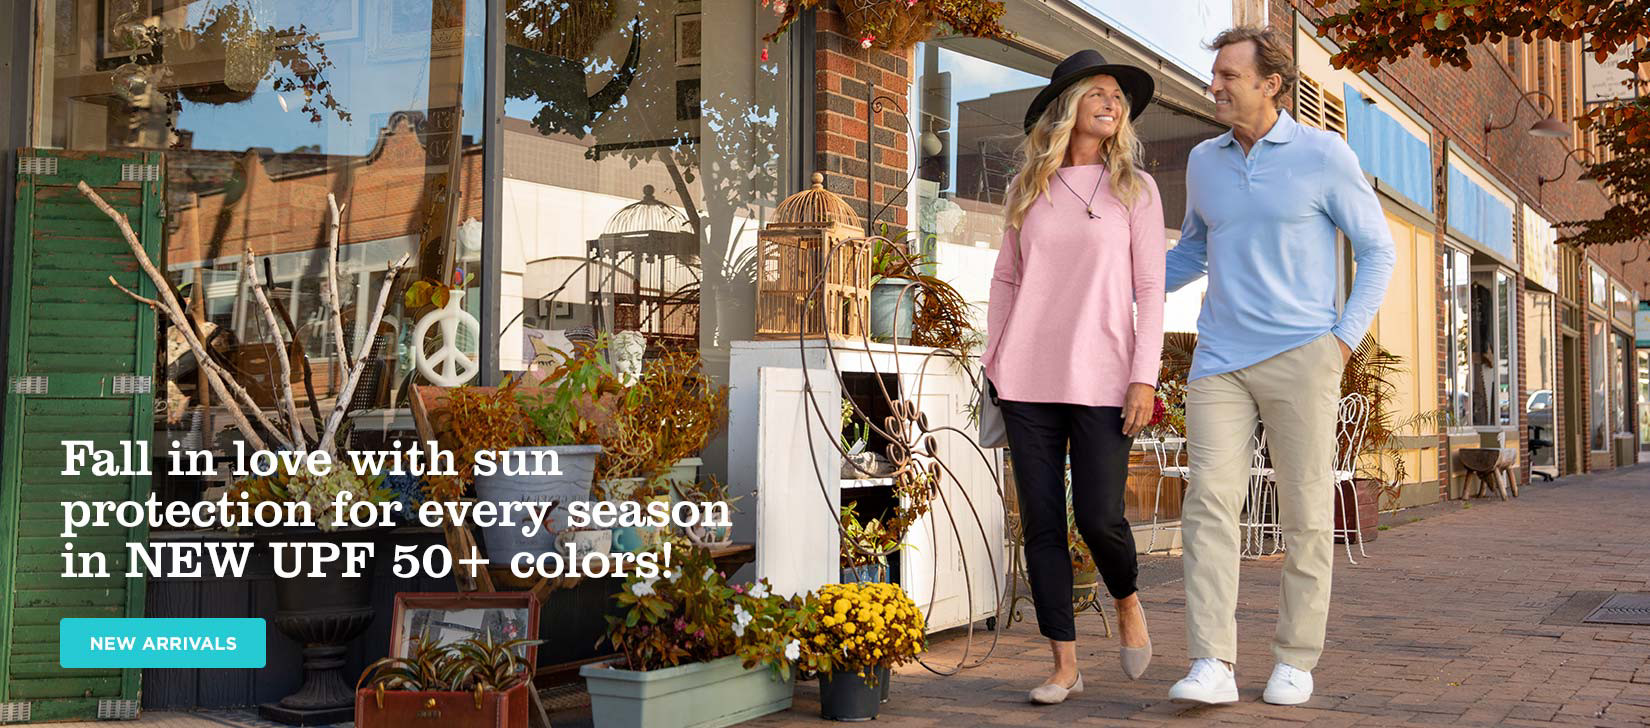 Fall in love with sun protection for every season in NEW UPF 50+